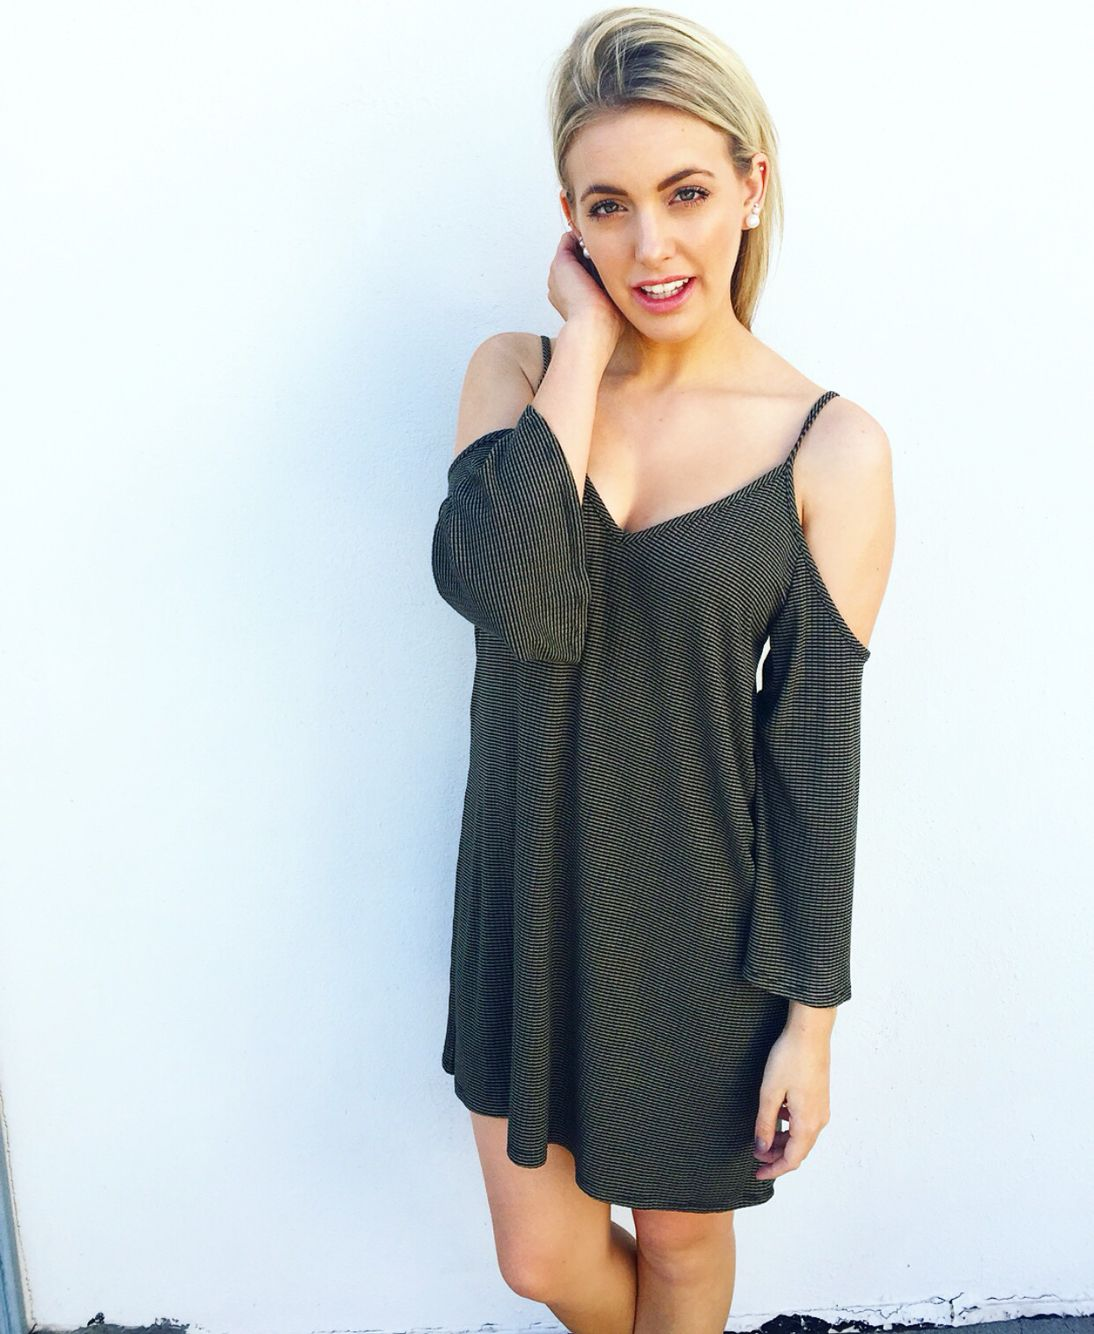 TENNESSEE STRIPED MINI // great simple dress with cut outs in the shoulder to add an edge xx Shop this look now on Effinshop.com